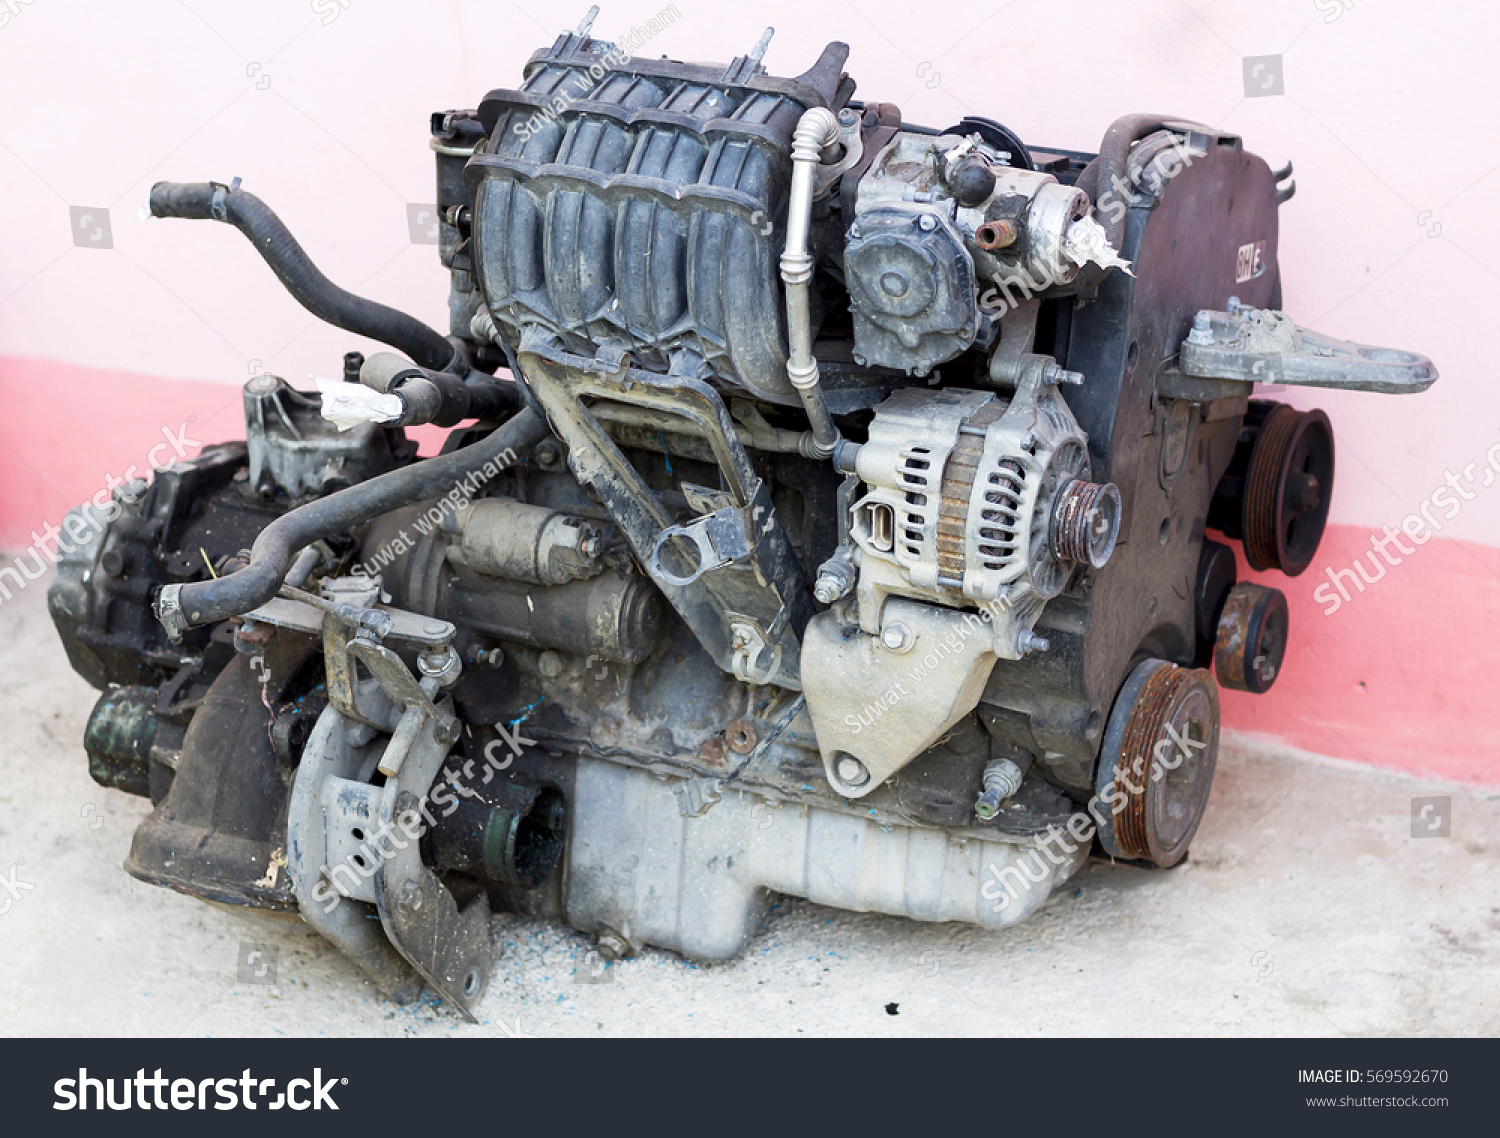 Old Car Engine Stock Photo (100% Legal Protection) 569592670 ...